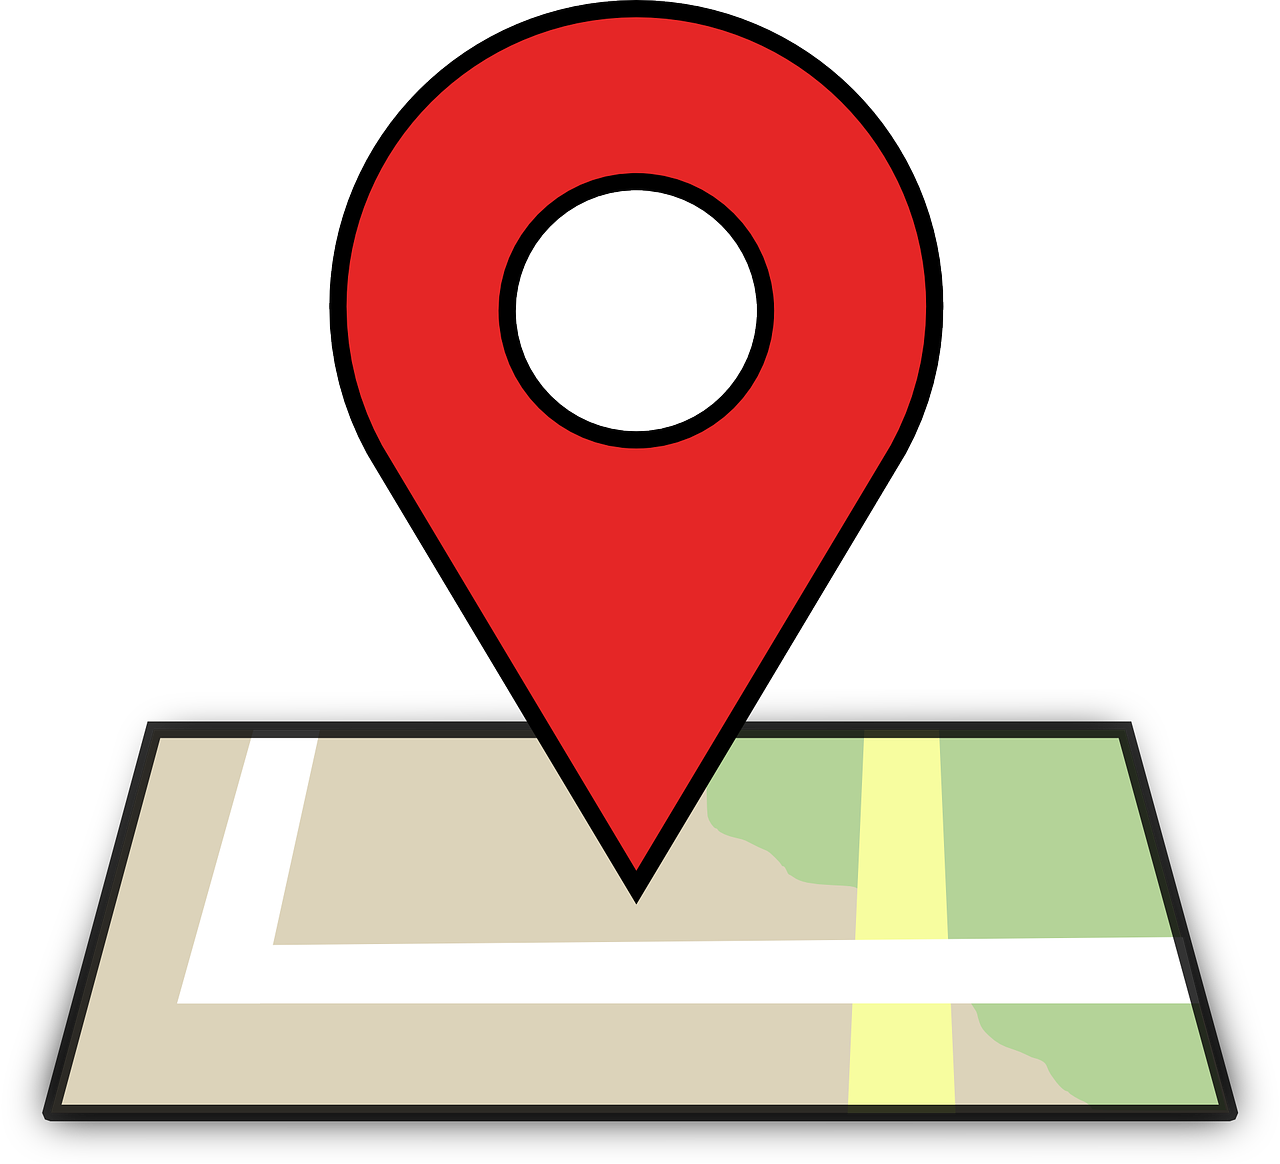 Clip directory business. Google maps is a